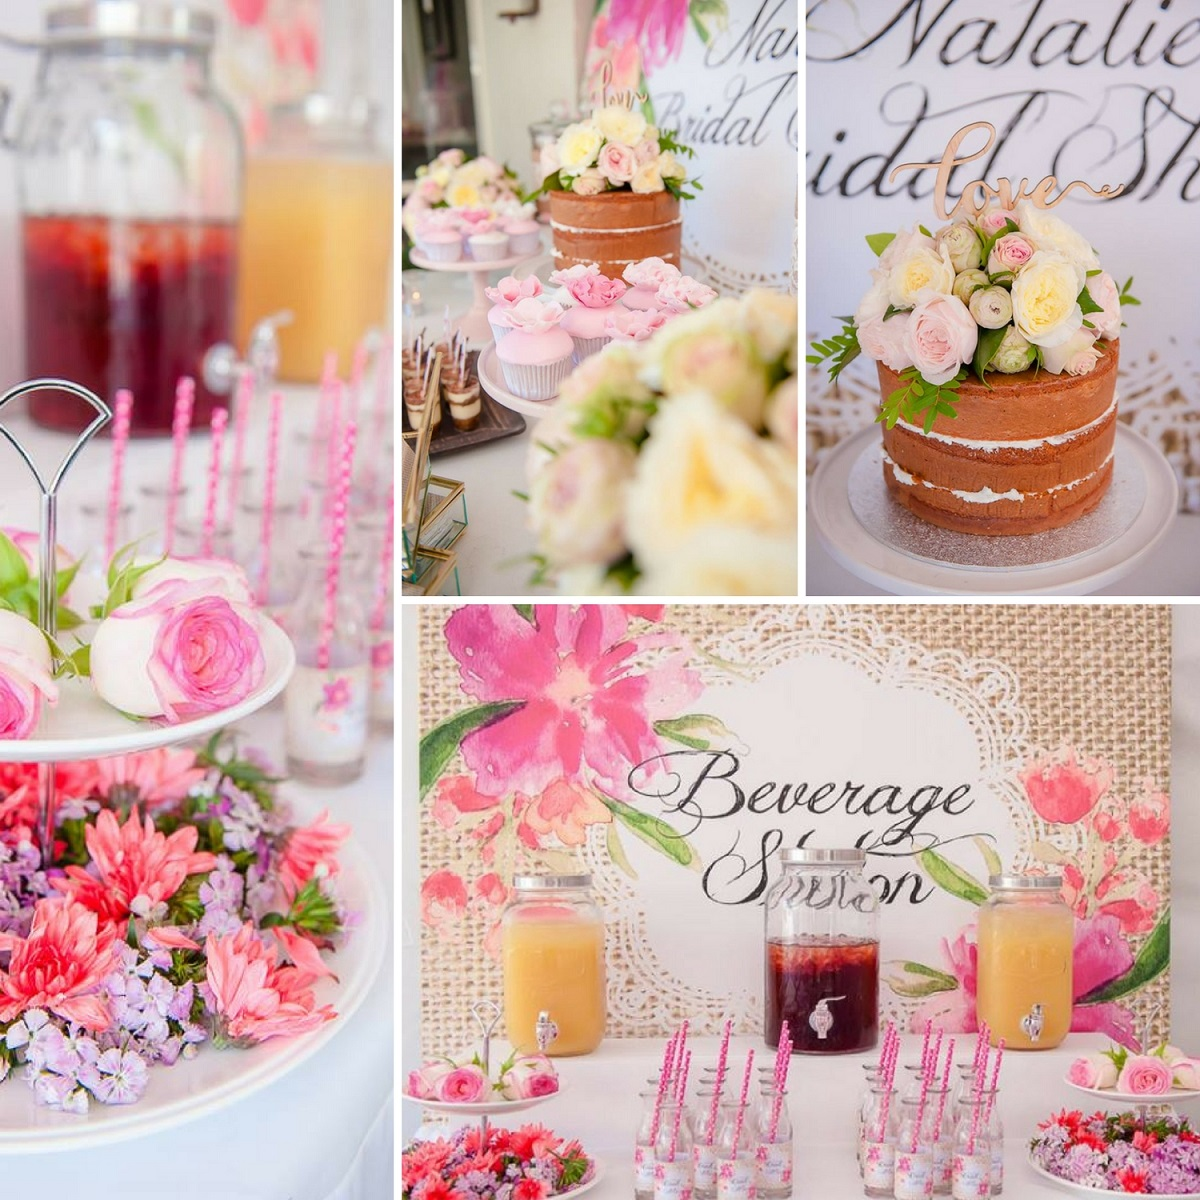 BridalShowerIdeas4u.com CH, Author at Bridal Shower Ideas - Themes